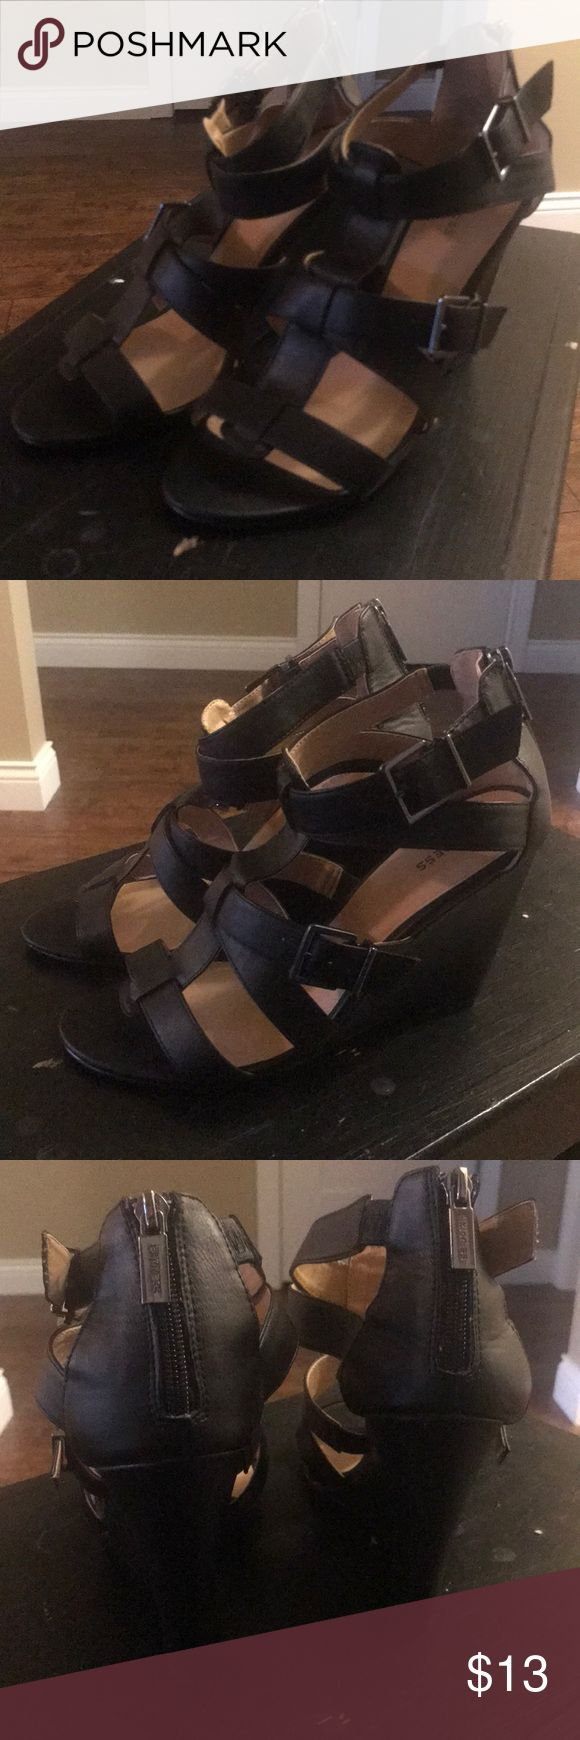 Black wedge sandals. Express wedge sandals. Worn once. Express Shoes Wedges